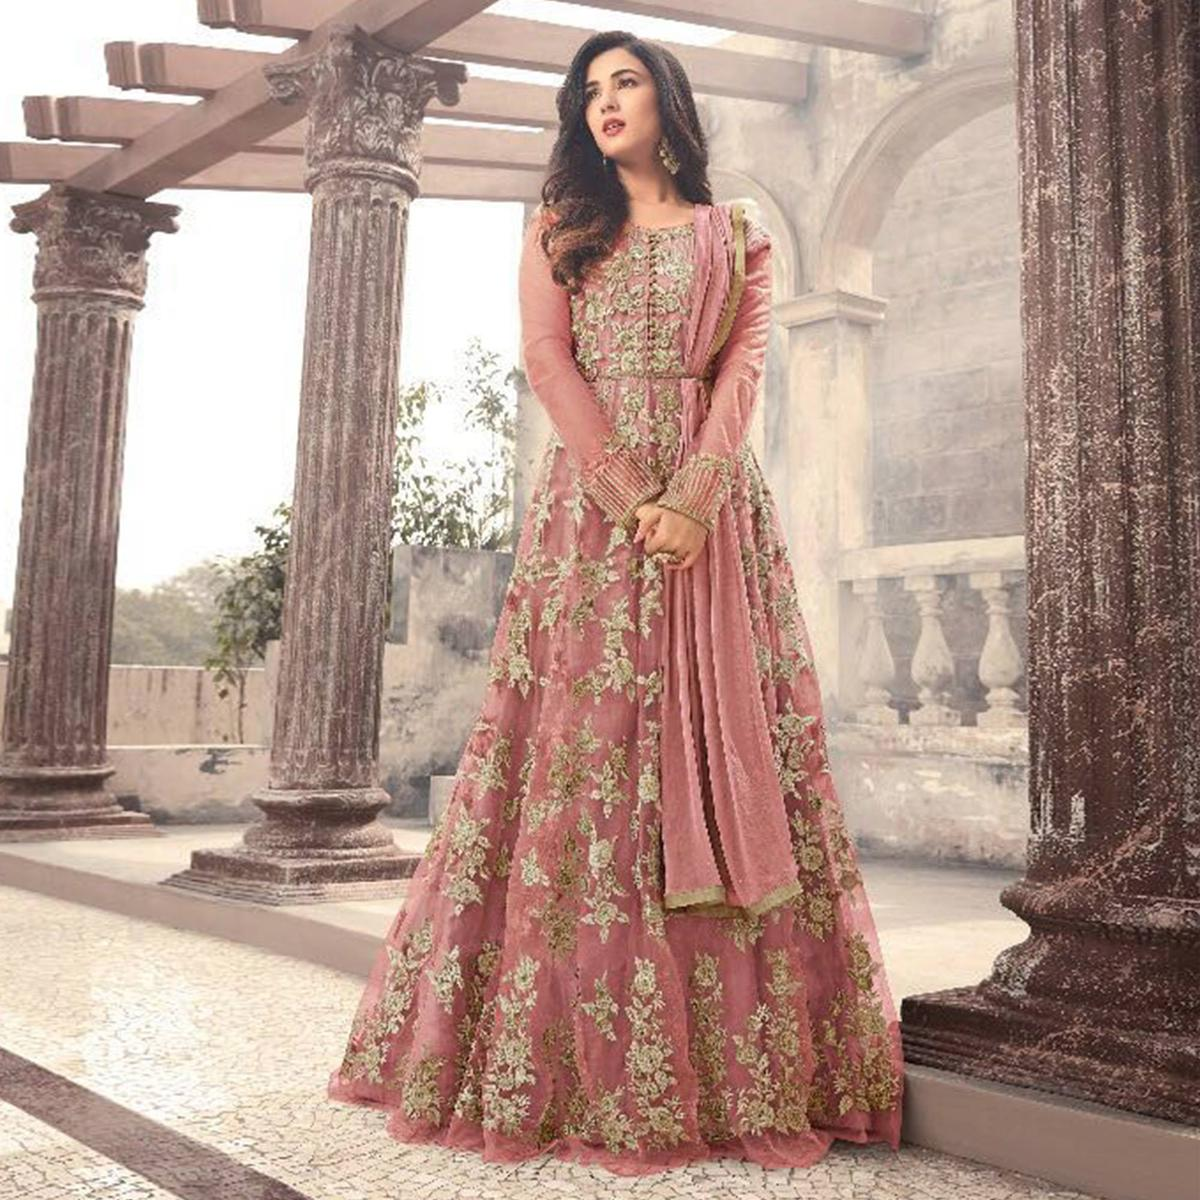 7af31abd8c Buy Marvellous Mauve Colored Party Wear Embroidered Net Anarkali Suit  Online India, Best Prices, Reviews - Peachmode